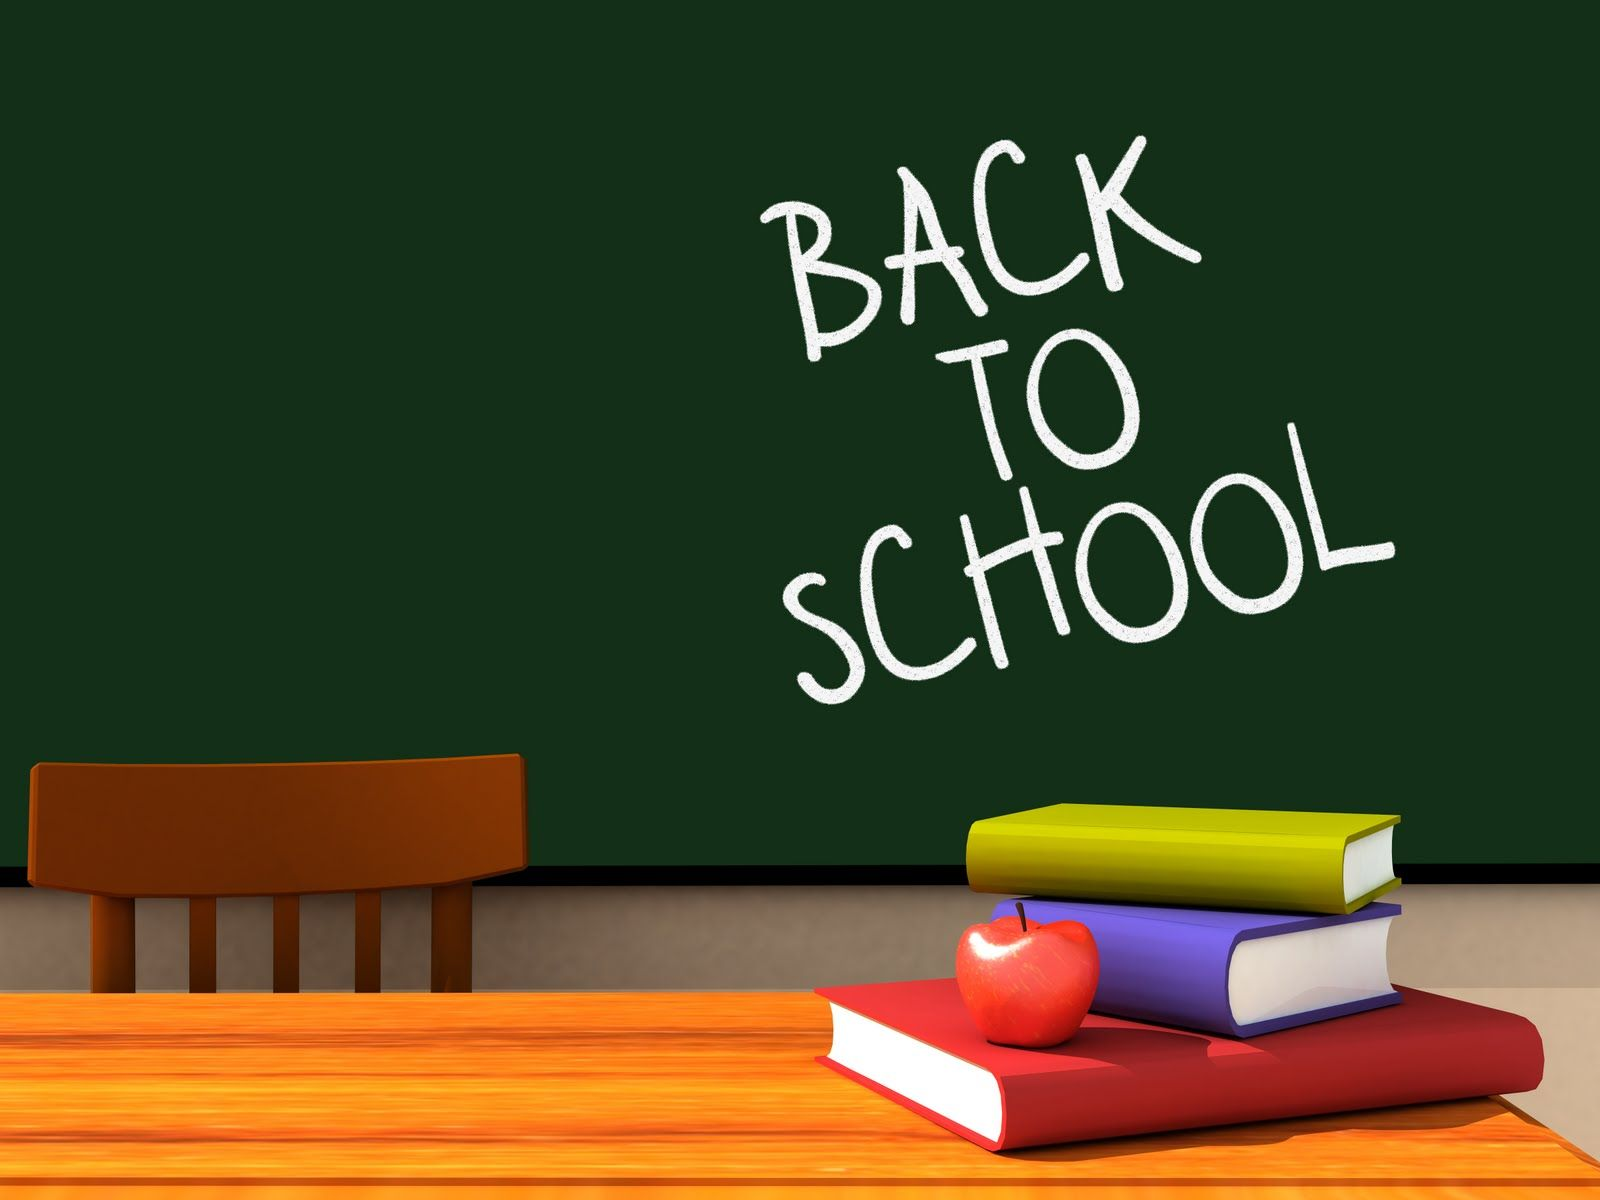 Back to School Wallpapers   Top Back to School Backgrounds 1600x1200